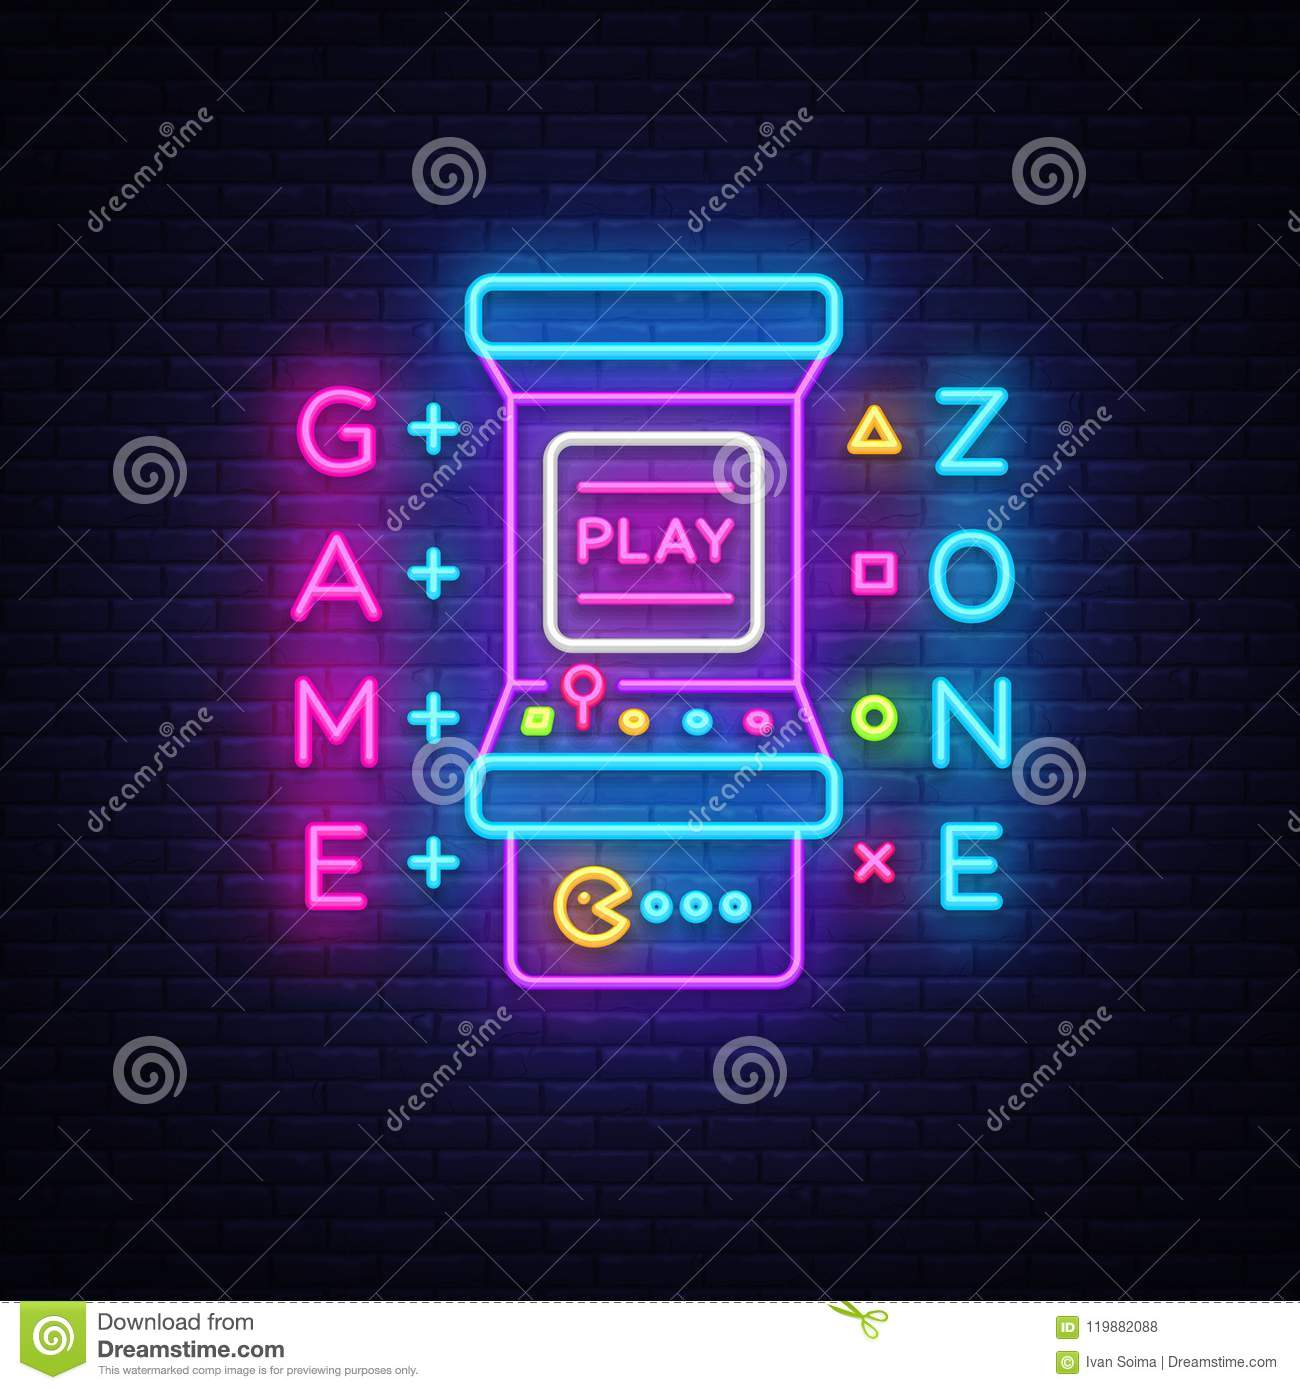 Game Zone Logo Vector Neon Game Room Neon Sign Board Design Template Gaming Industry Advertising Gaming Machine Stock Vector Illustration Of Phone Bright 119882088